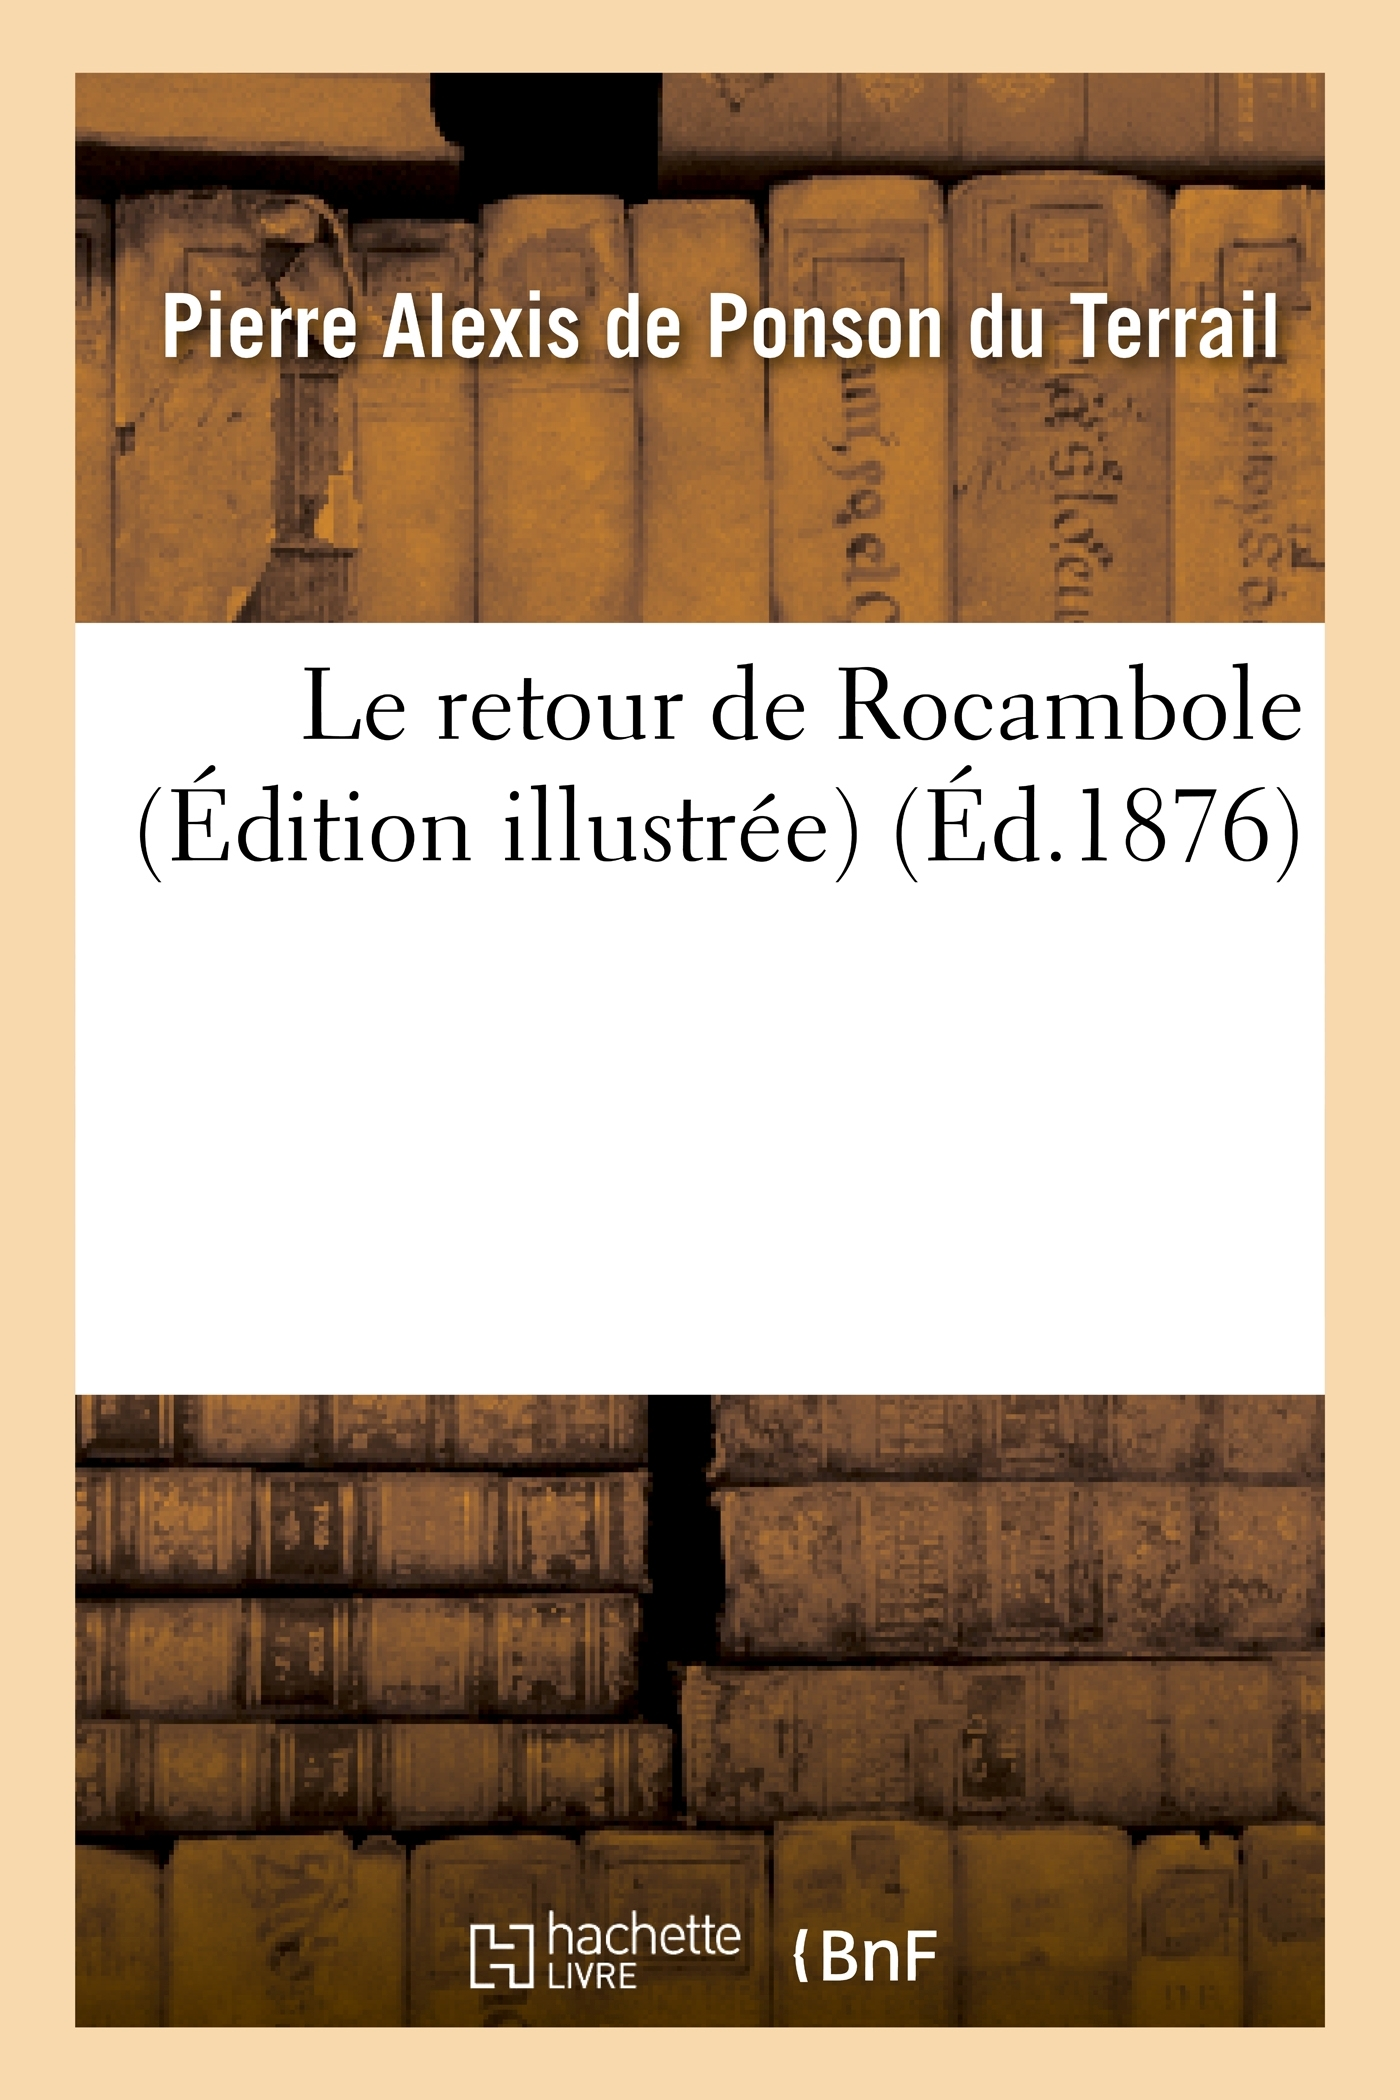 LE RETOUR DE ROCAMBOLE (EDITION ILLUSTREE)